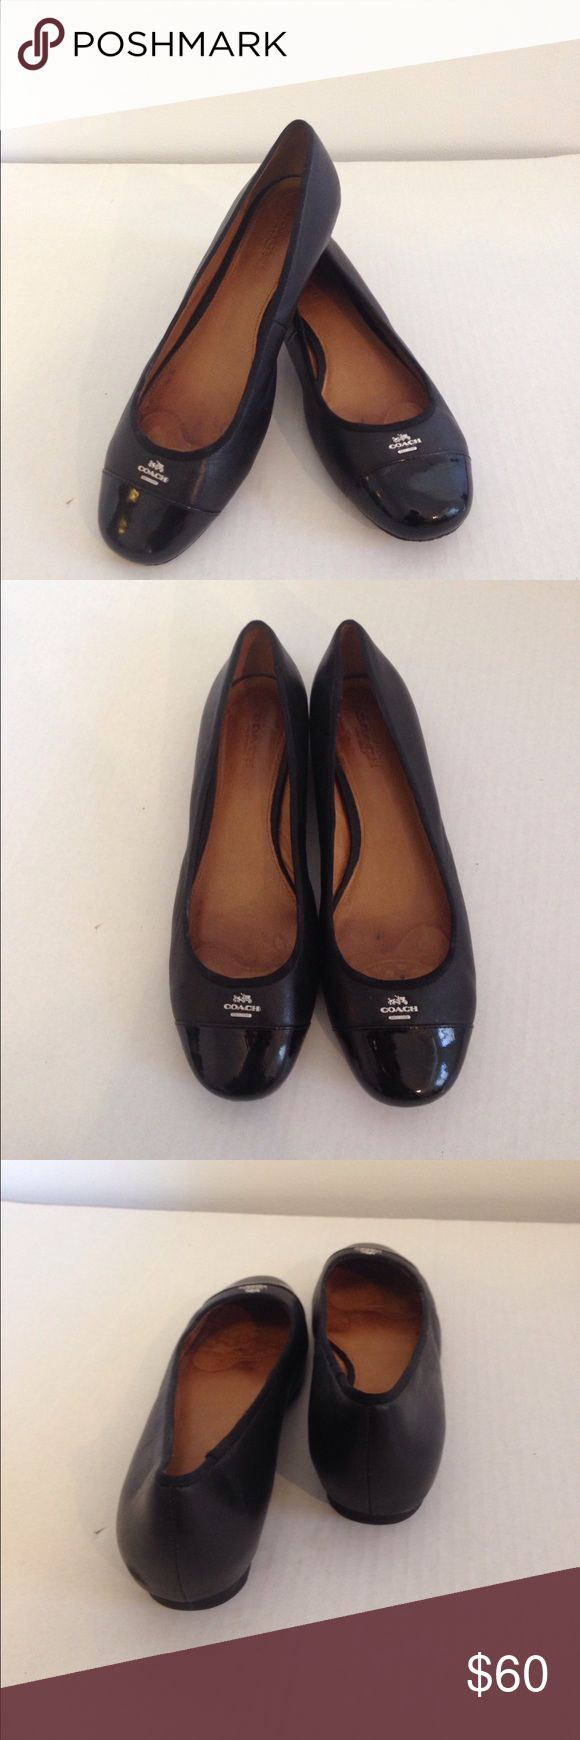 Coach black leather flats size 7.5 Coach black leather flats size 7.5, silver tone hardware. Great condition Coach Shoes Flats & Loafers